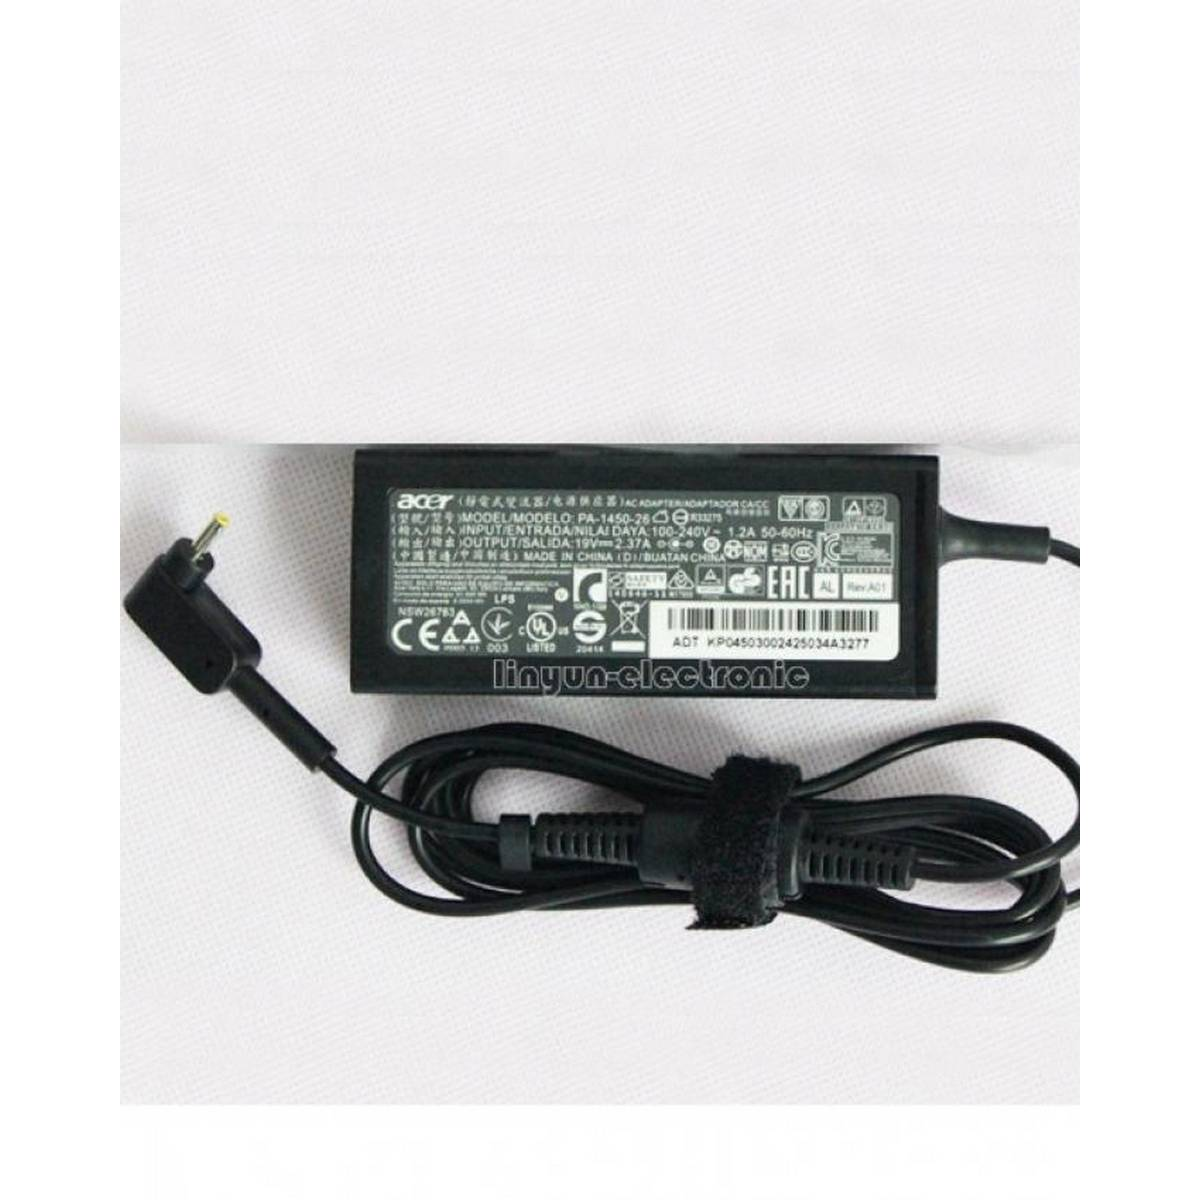 Acer 45W 19V 2.37A AC Adapter Charger PA-1450-26 3.0mm*1.1mm for Chromebook 15 CB3-531 Aspire S7-392 Ultrabook